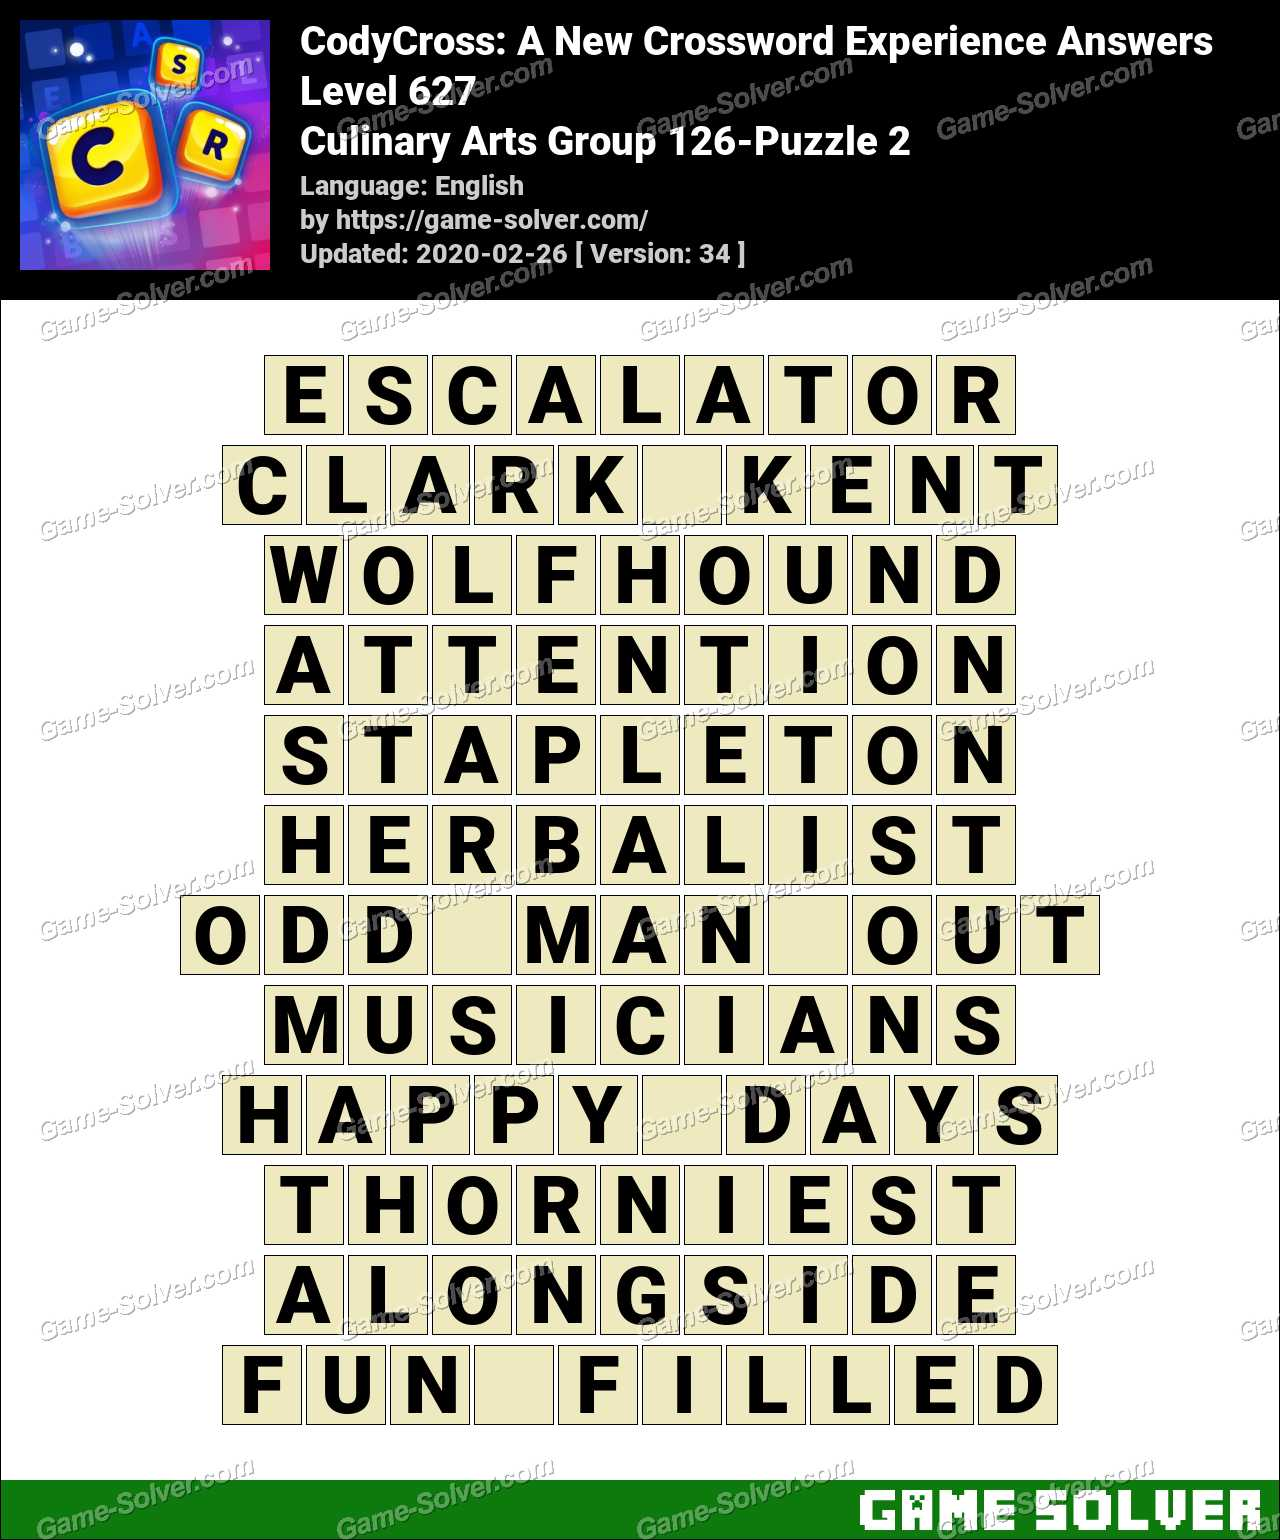 CodyCross Culinary Arts Group 126-Puzzle 2 Answers